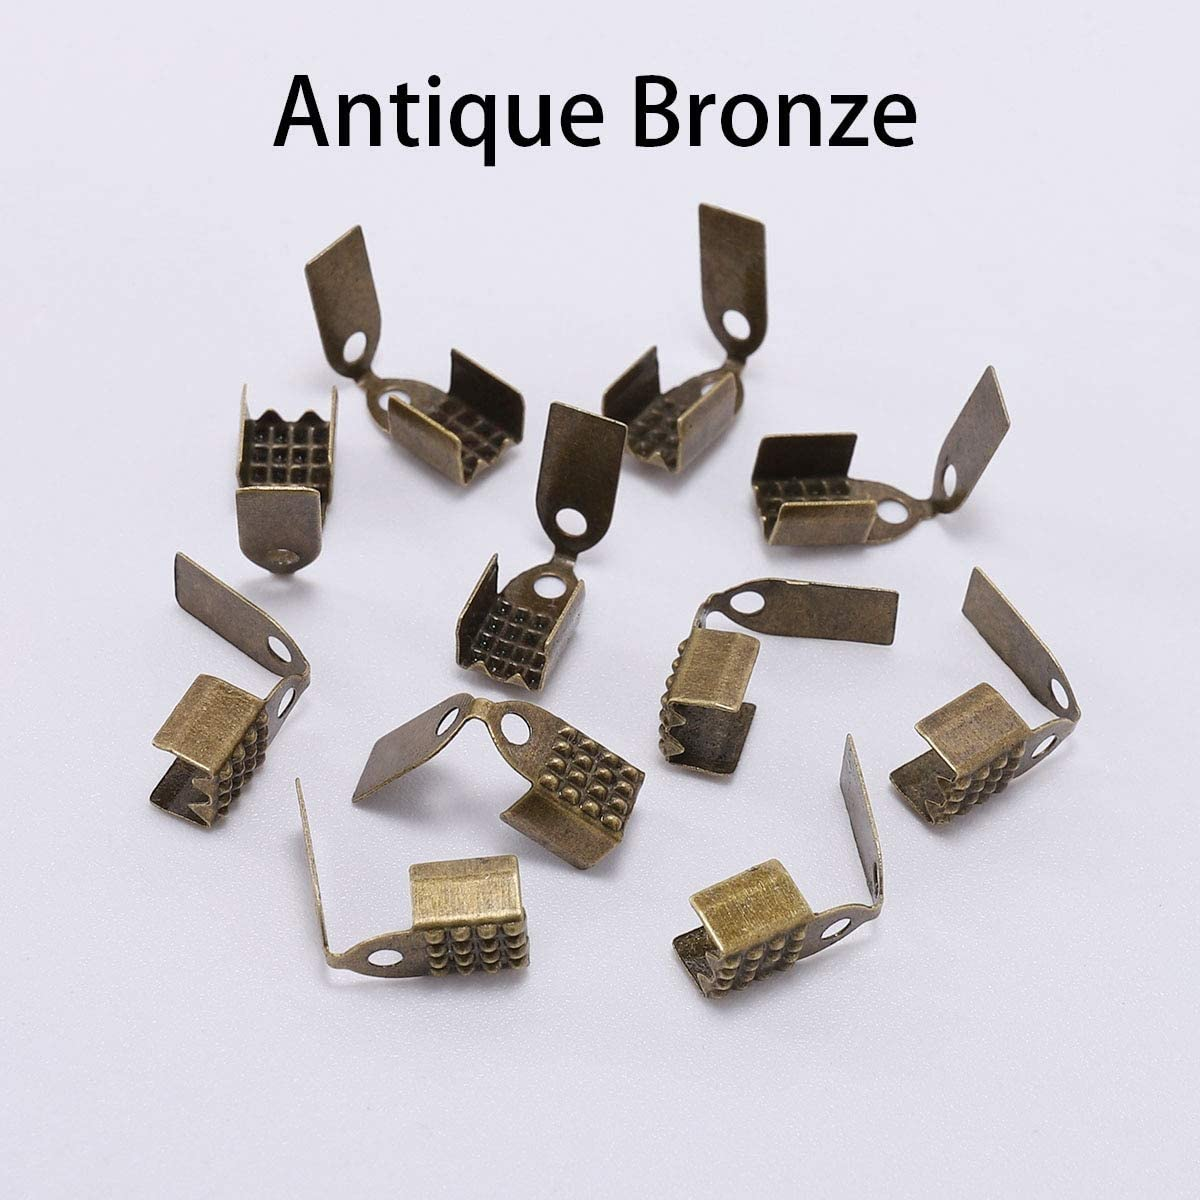 Color: Antique Bronze; Size: 4mm HANDYCRF100pcs 4 5 6mm Metal Rope Fastener Crimp Fold Over Cord End Cap Leather Clip Connector for DIY Jewelry Making Findings Supplies